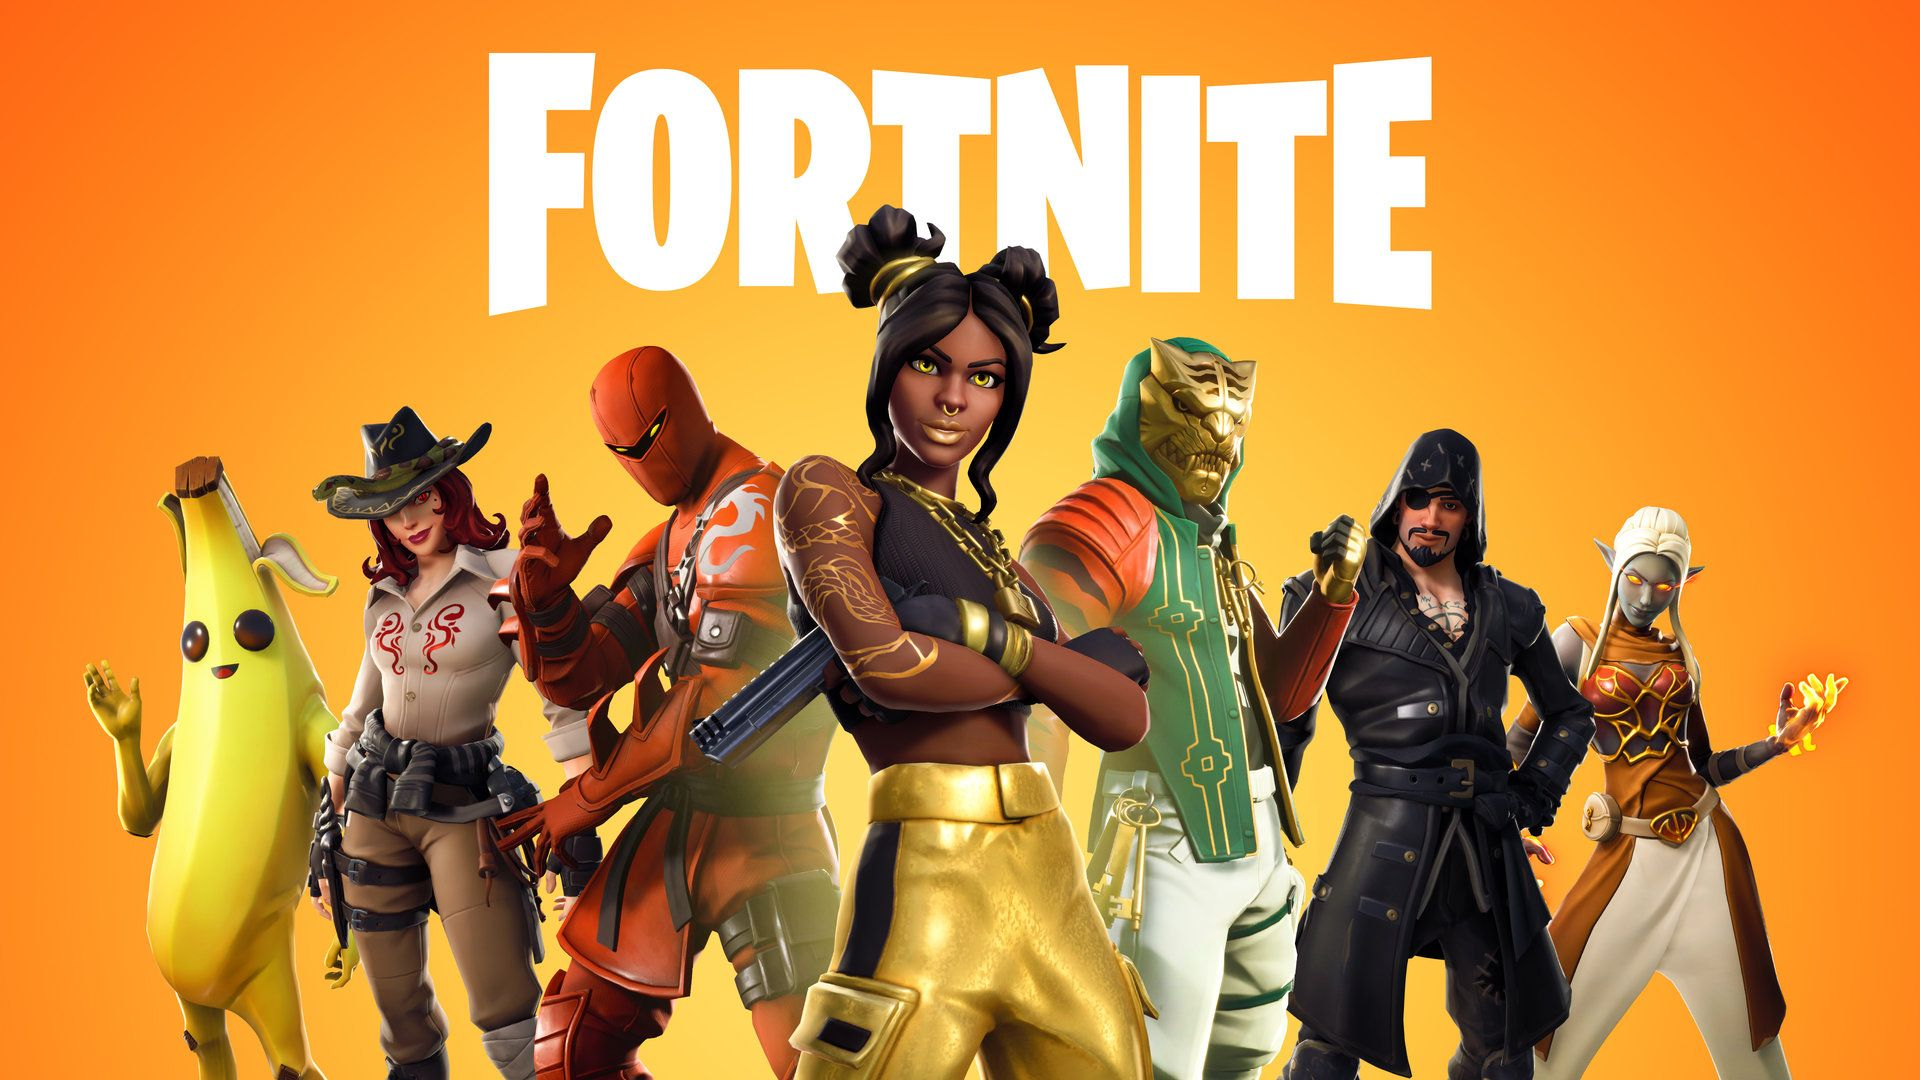 A New Fortnite Update Just Added A Bunch Of New Skins To The Game Here Are All The Outfits You Can Unlock During Season 8 Fortnite Epic Games Epic Games Fortnite